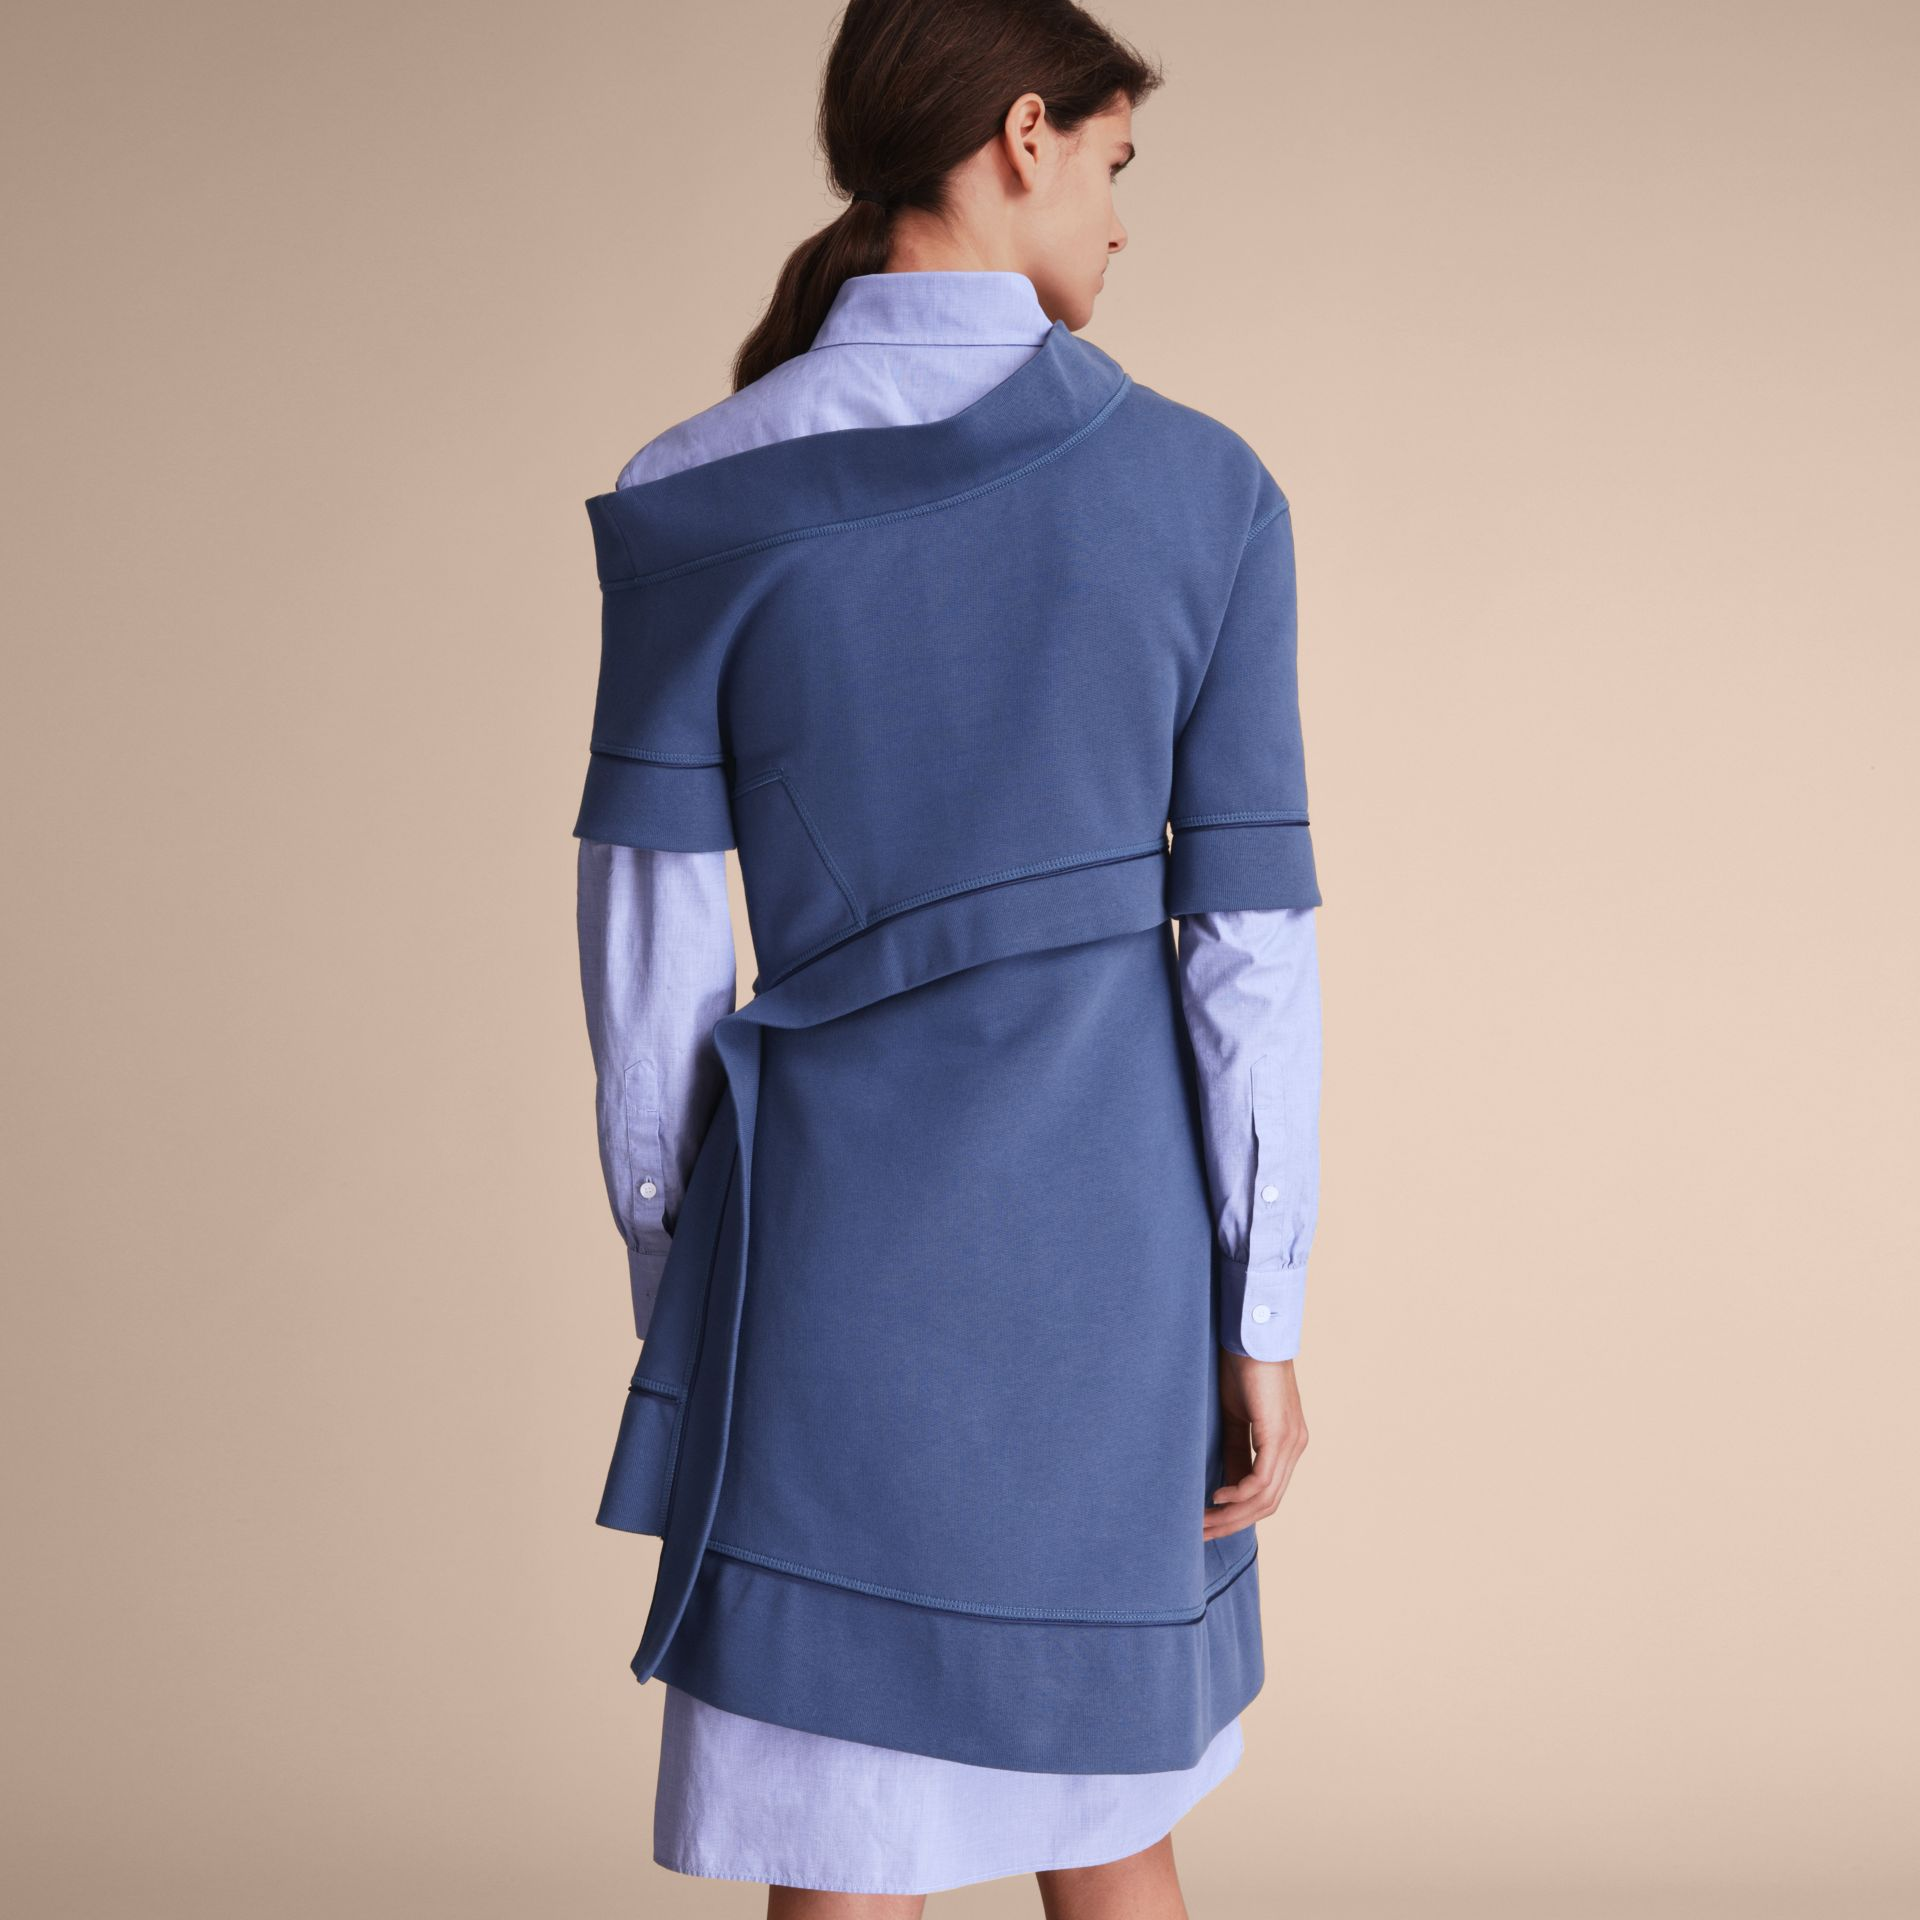 One-shoulder Sweatshirt Dress in Pewter Blue - Women | Burberry Singapore - gallery image 3